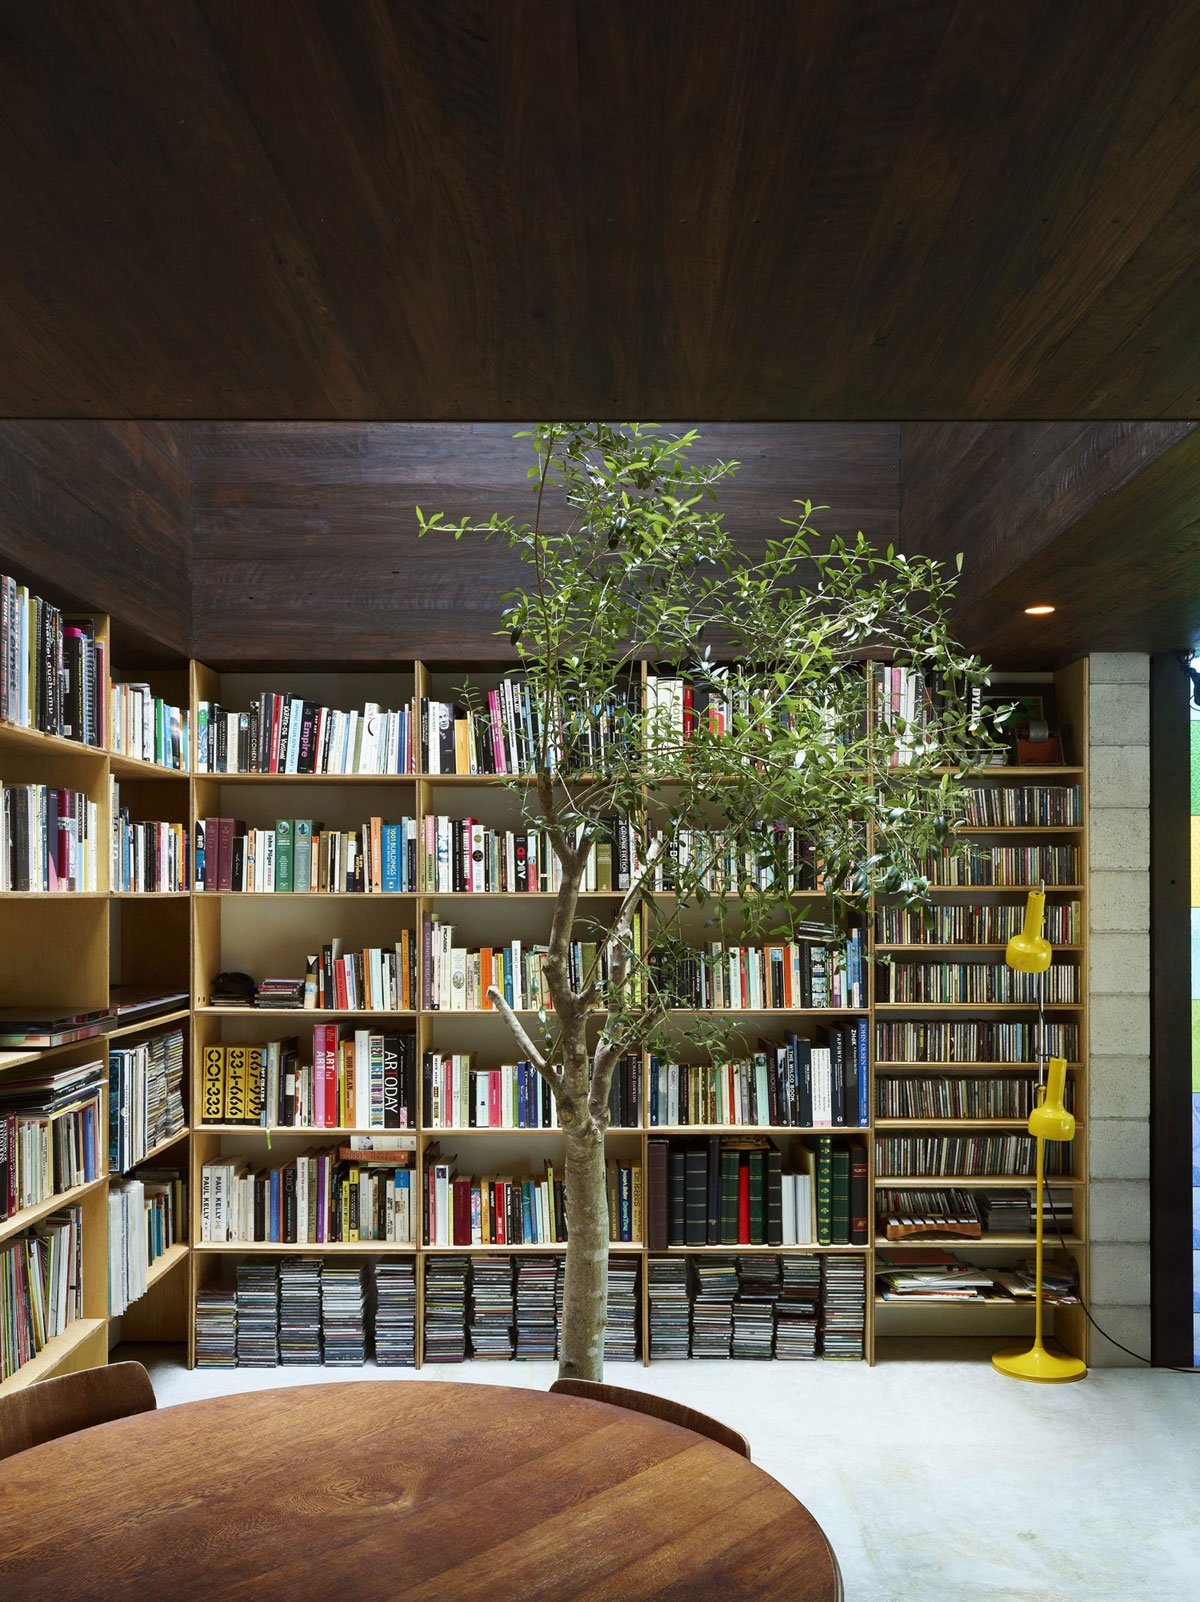 Dawn Johnsen >> Raven Street House by James Russell Architect - CAANdesign | Architecture and home design blog